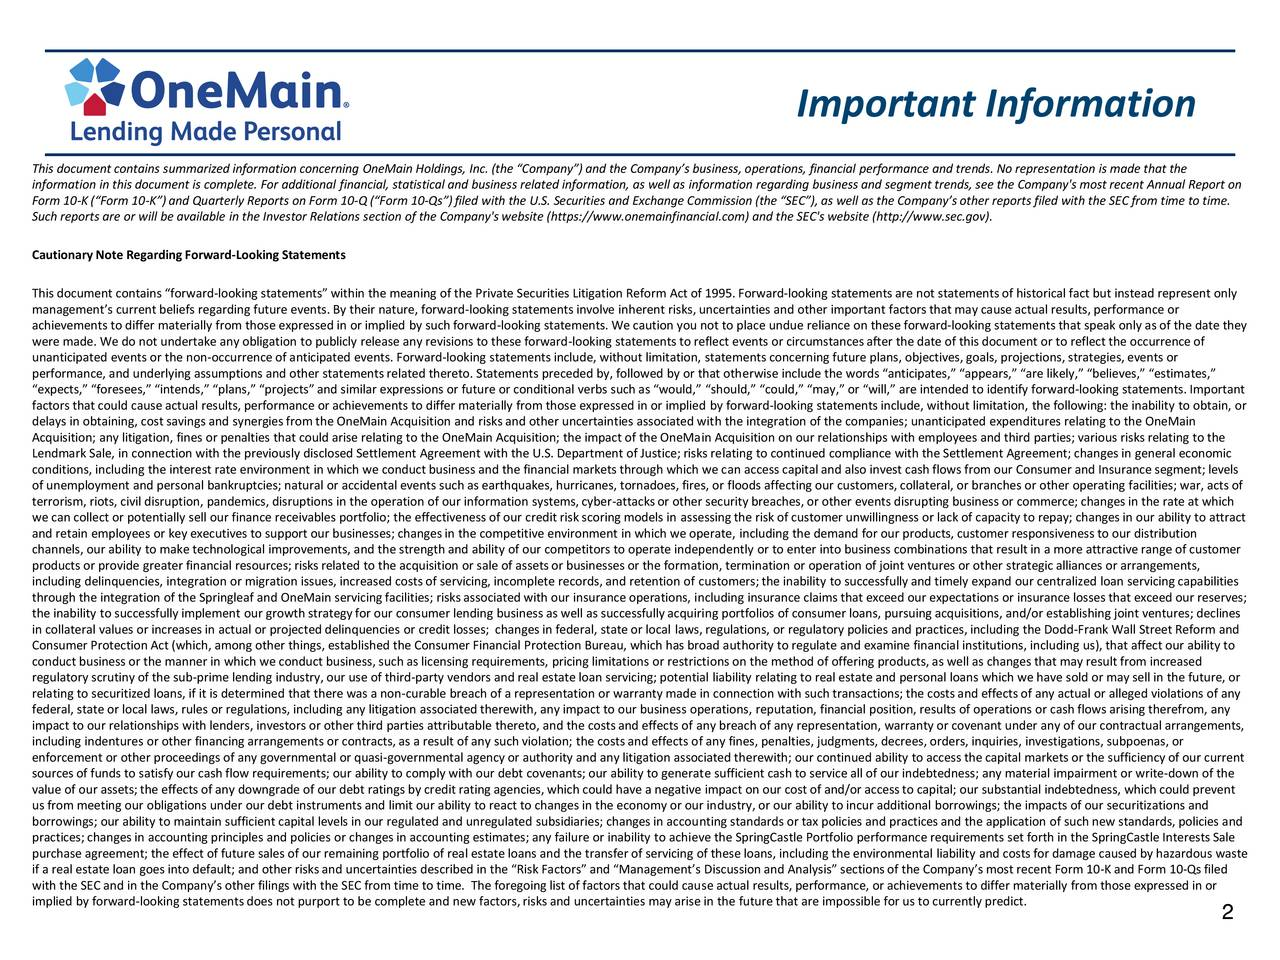 This document contains summarized information concerning OneMain Holdings, Inc. (the Company) and the Companys business, operations, financial performance and trends. No representation is made that the information in this document is complete. For additional financial, statistical and business related information, as well as information regarding business and segment trends, see the Company's most recent Annual Report on Form 10-K (Form 10-K) and Quarterly Reports on Form 10-Q (Form 10-Qs)filed with the U.S. Securities and Exchange Commission (the SEC), as well as the Companys other reports filed with the SEC from time to time. Such reports are or will be available in the Investor Relations section of the Company's website (https://www.onemainfinancial.com) and the SEC's website (http://www.sec.gov). Cautionary Note Regarding Forward-Looking Statements This document contains forward-looking statements within the meaning of the Private Securities Litigation Reform Act of 1995. Forward-looking statements are not statements of historical fact but instead represent only managements current beliefs regarding future events. By their nature, forward-looking statements involve inherent risks, uncertainties and other important factors that may cause actual results, performance or achievements to differ materially from those expressed in or implied by such forward-looking statements. We caution you not to place undue reliance on these forward-looking statements that speak only as of the date they were made. We do not undertake any obligation to publicly release any revisions to these forward-looking statements to reflect events or circumstancesafter the date of this document or to reflect the occurrence of unanticipated events or the non-occurrence of anticipated events. Forward-looking statements include, without limitation, statements concerning future plans, objectives, goals, projections, strategies, events or performance, and underlying assumptions and other statements r